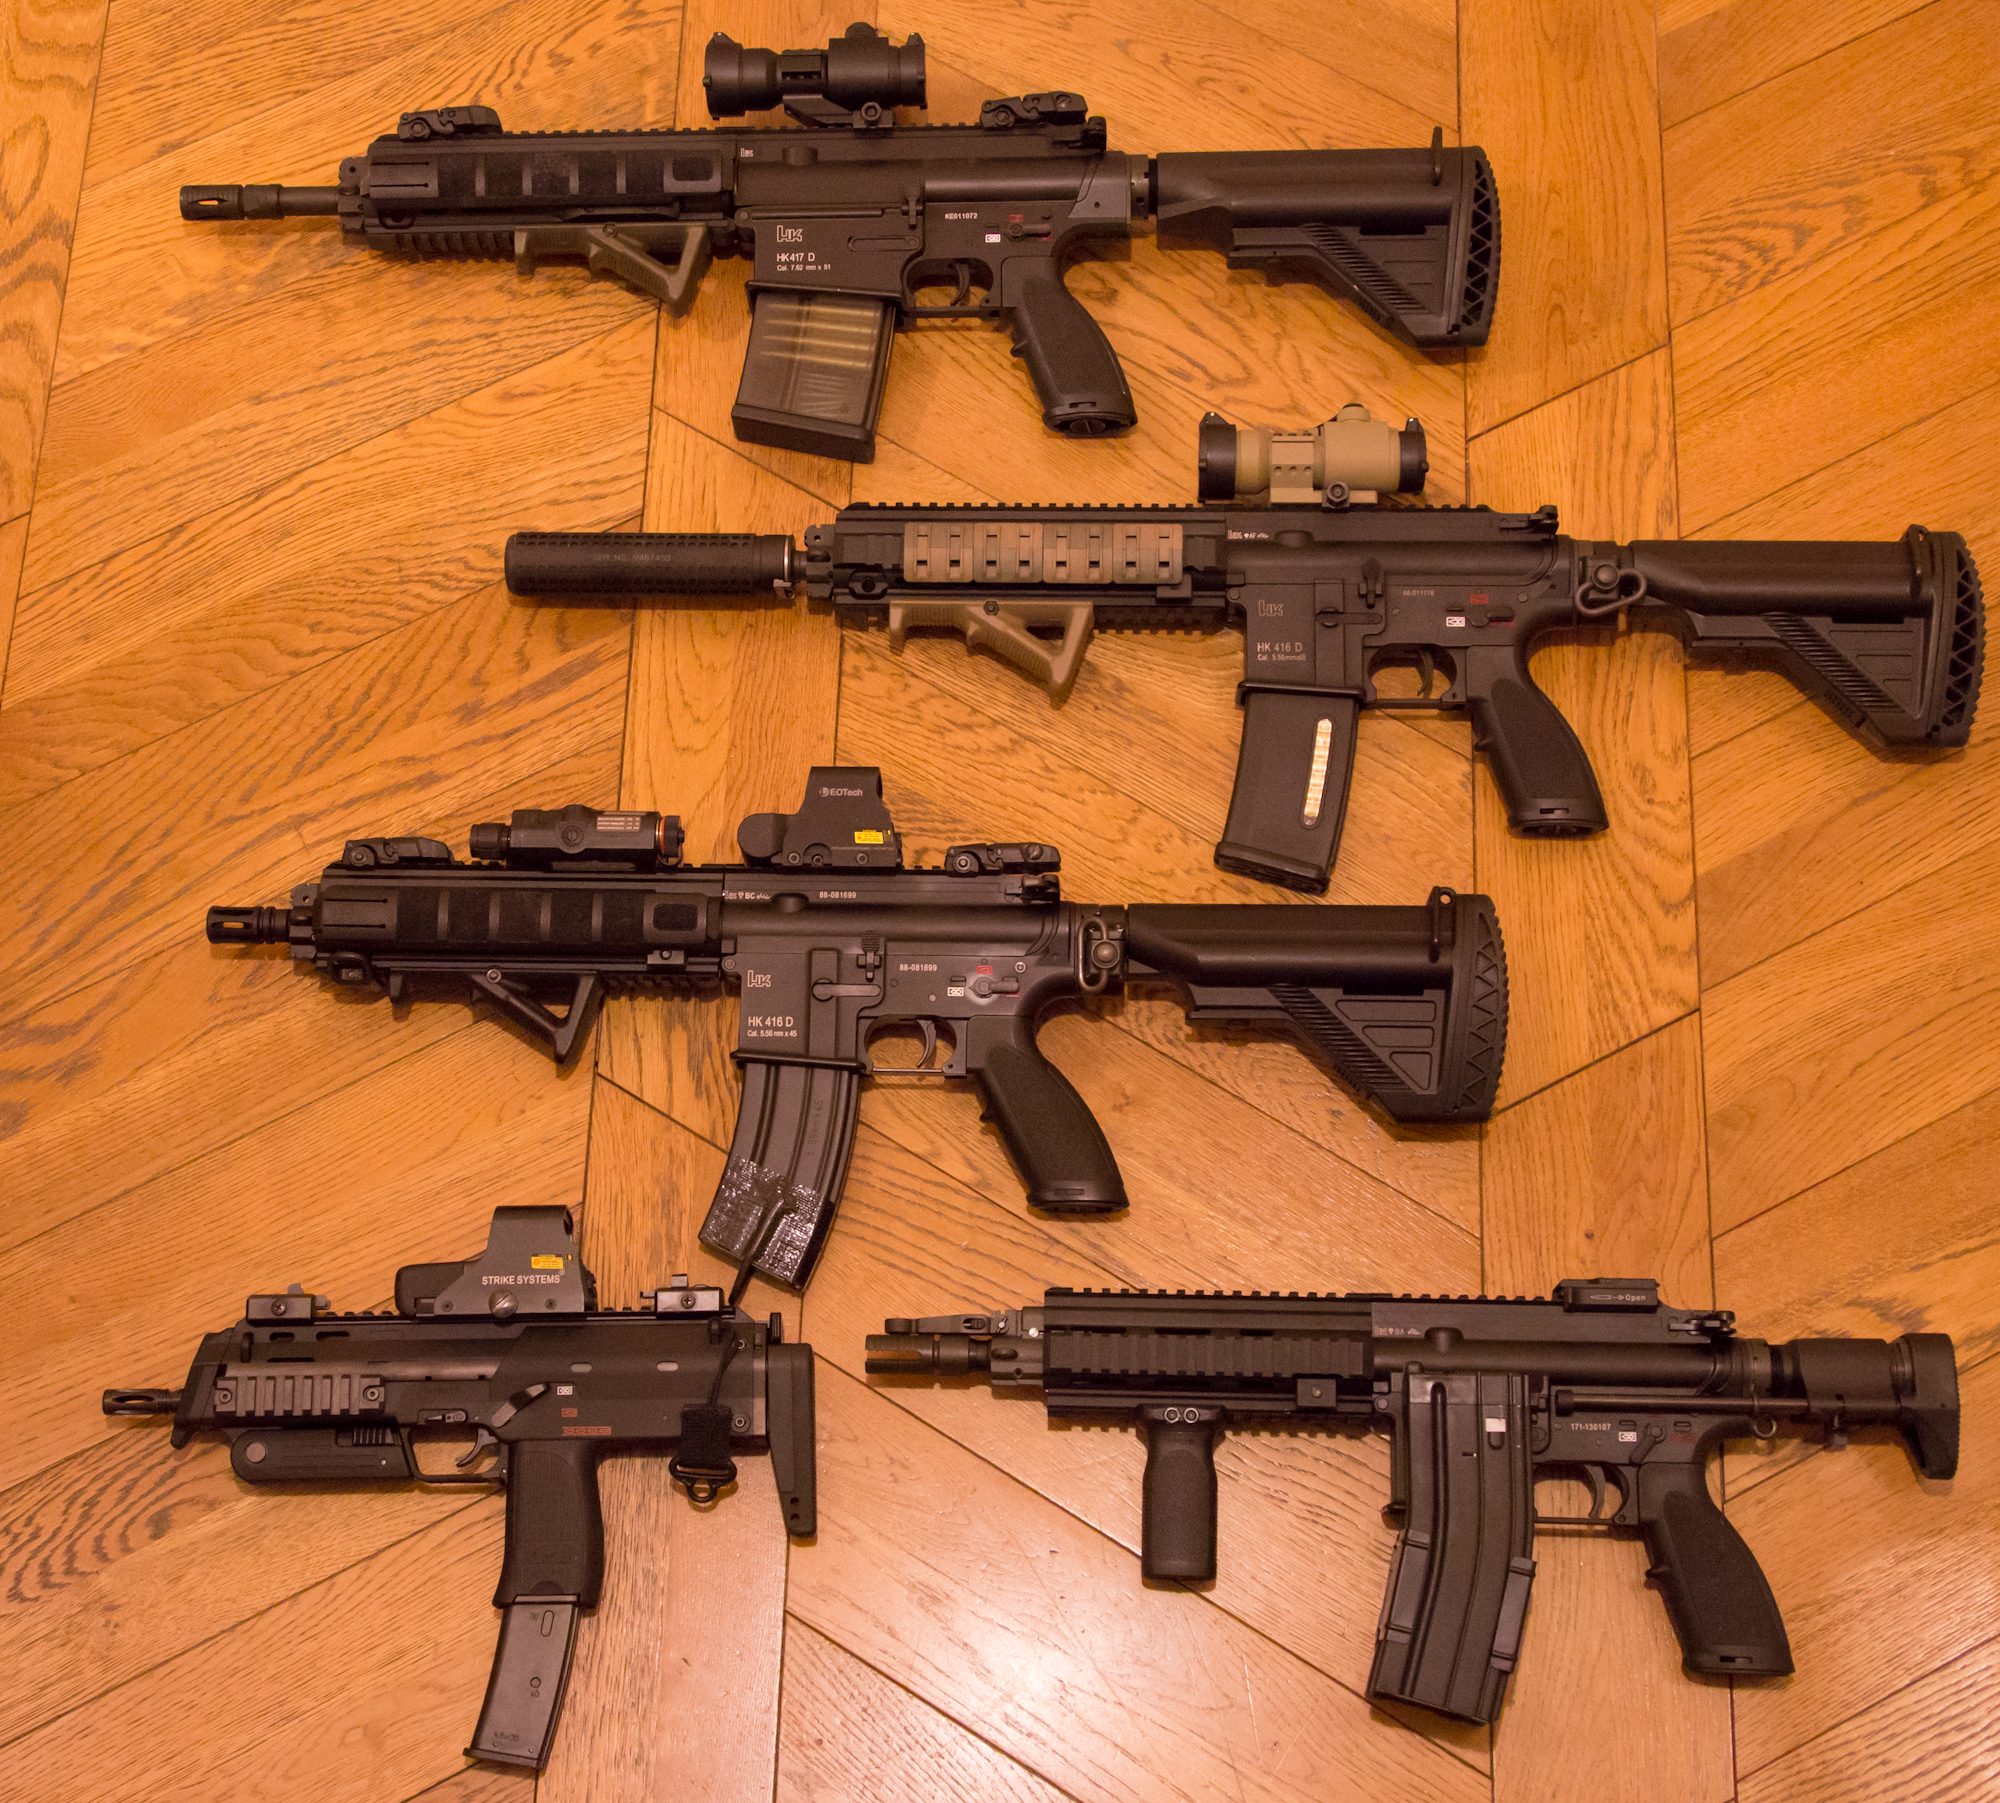 France-Airsoft > Groupe Hk 416' Lovers